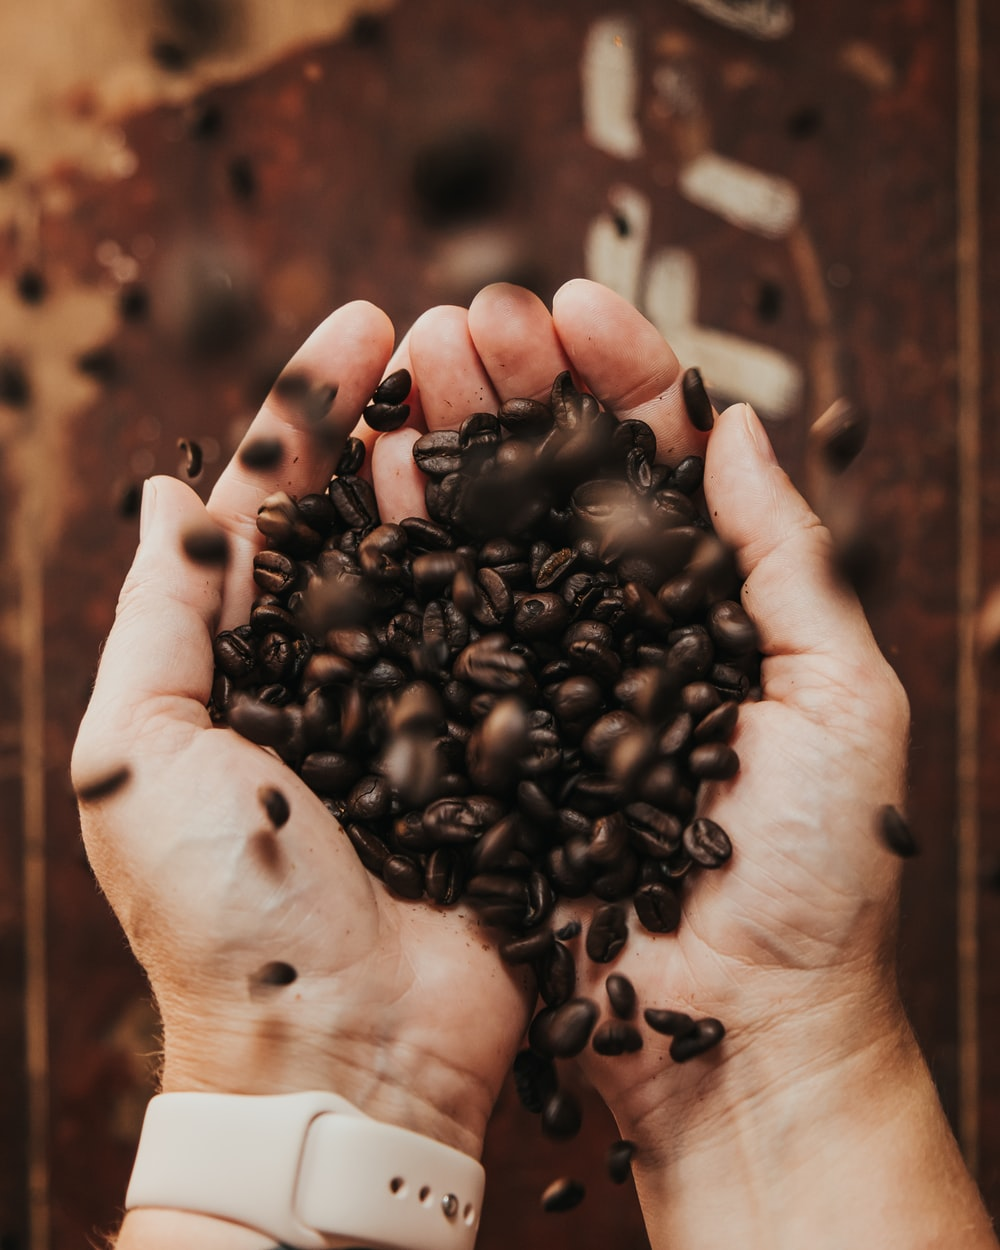 person holding coffee beans in grayscale photography